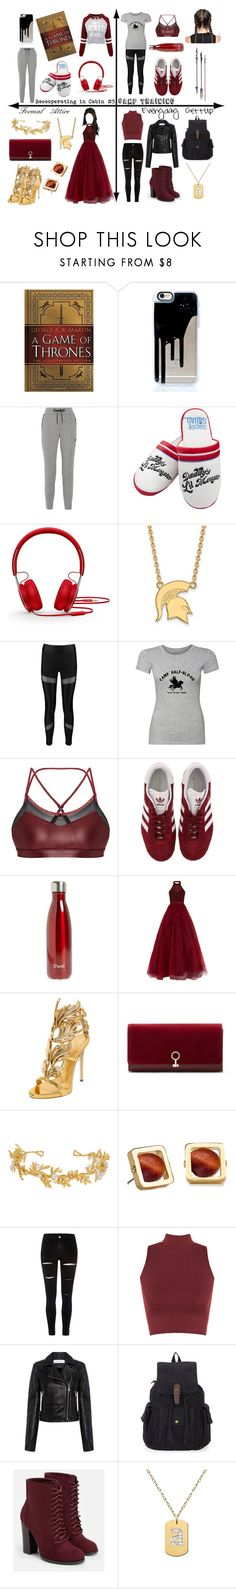 """""""Daughter of Ares"""" by tiffany-du-plessis ❤ liked on Polyvore featuring NIKE, Beats by Dr. Dre, LogoArt, Ultimate, Boohoo, Koral, adidas, S'well, Jovani and Giuseppe Zanotti"""